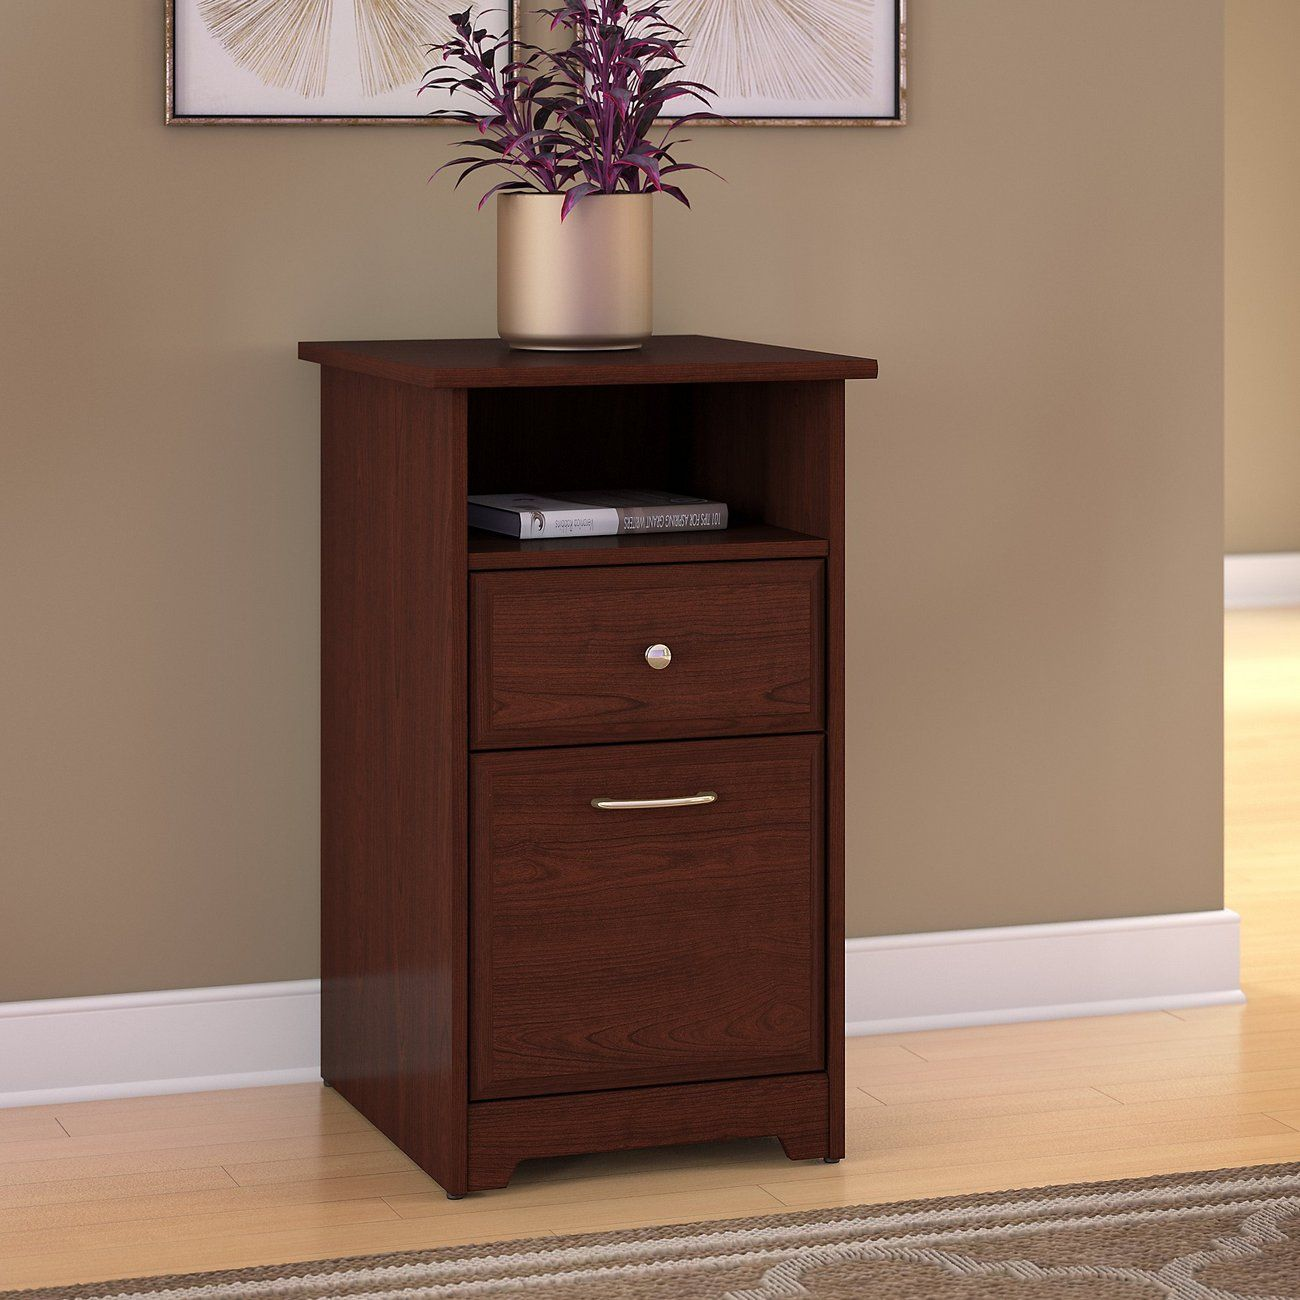 2 Drawer File Cabinet In Harvest Cherry